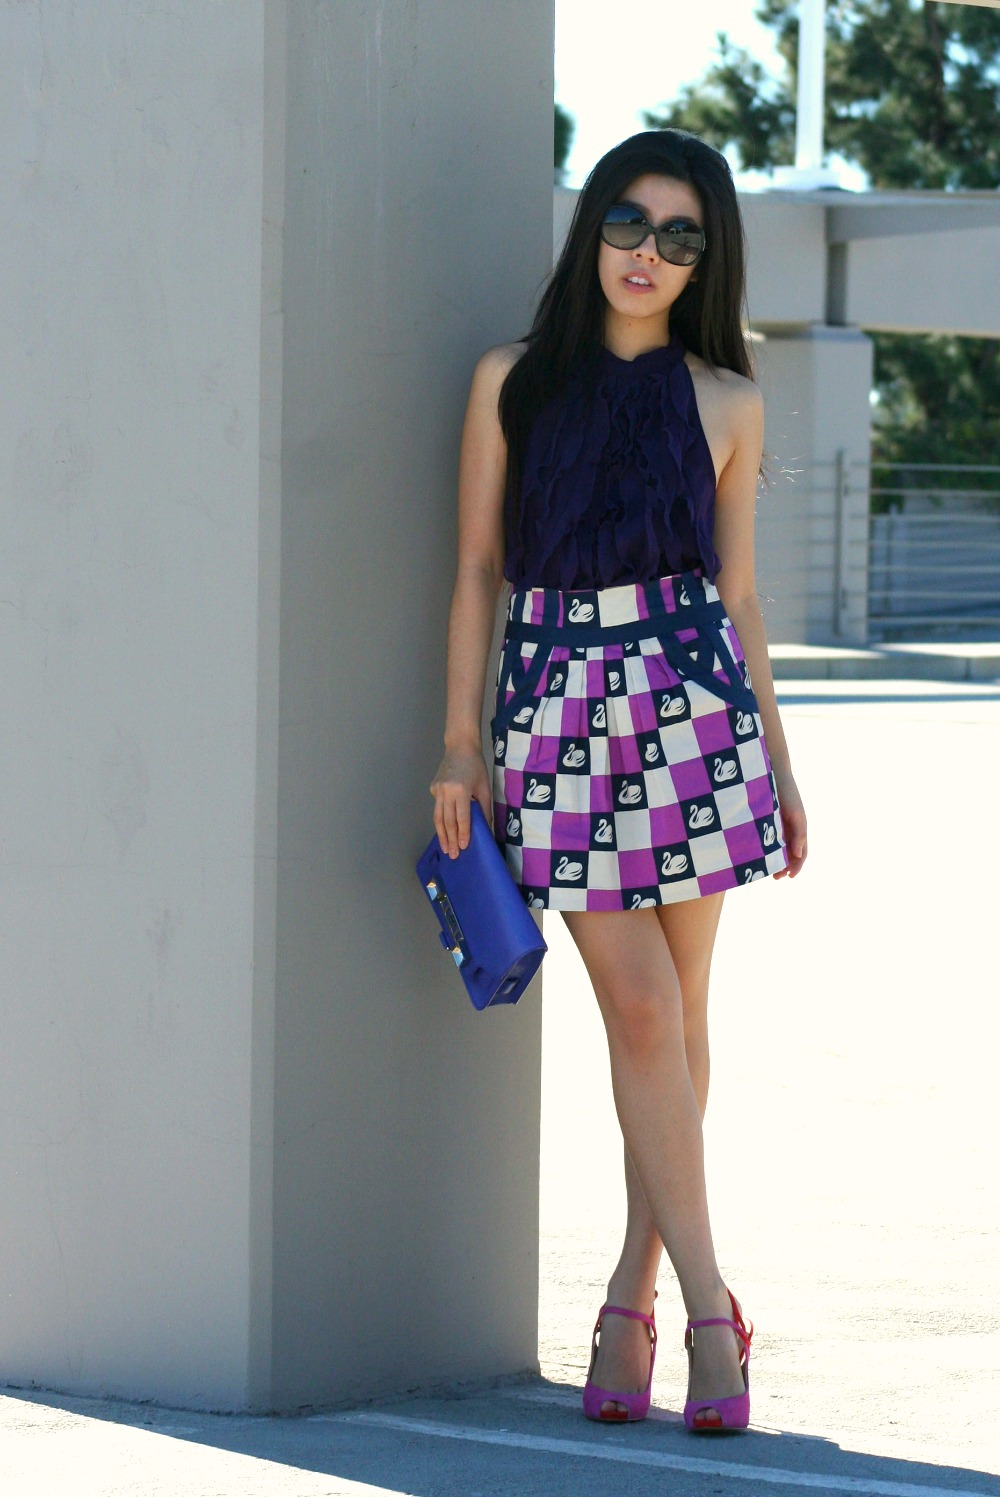 How to Wear a Mini Skirt to Work_Work Appropriate Mini Skirt_Adrienne Nguyen_Invictus